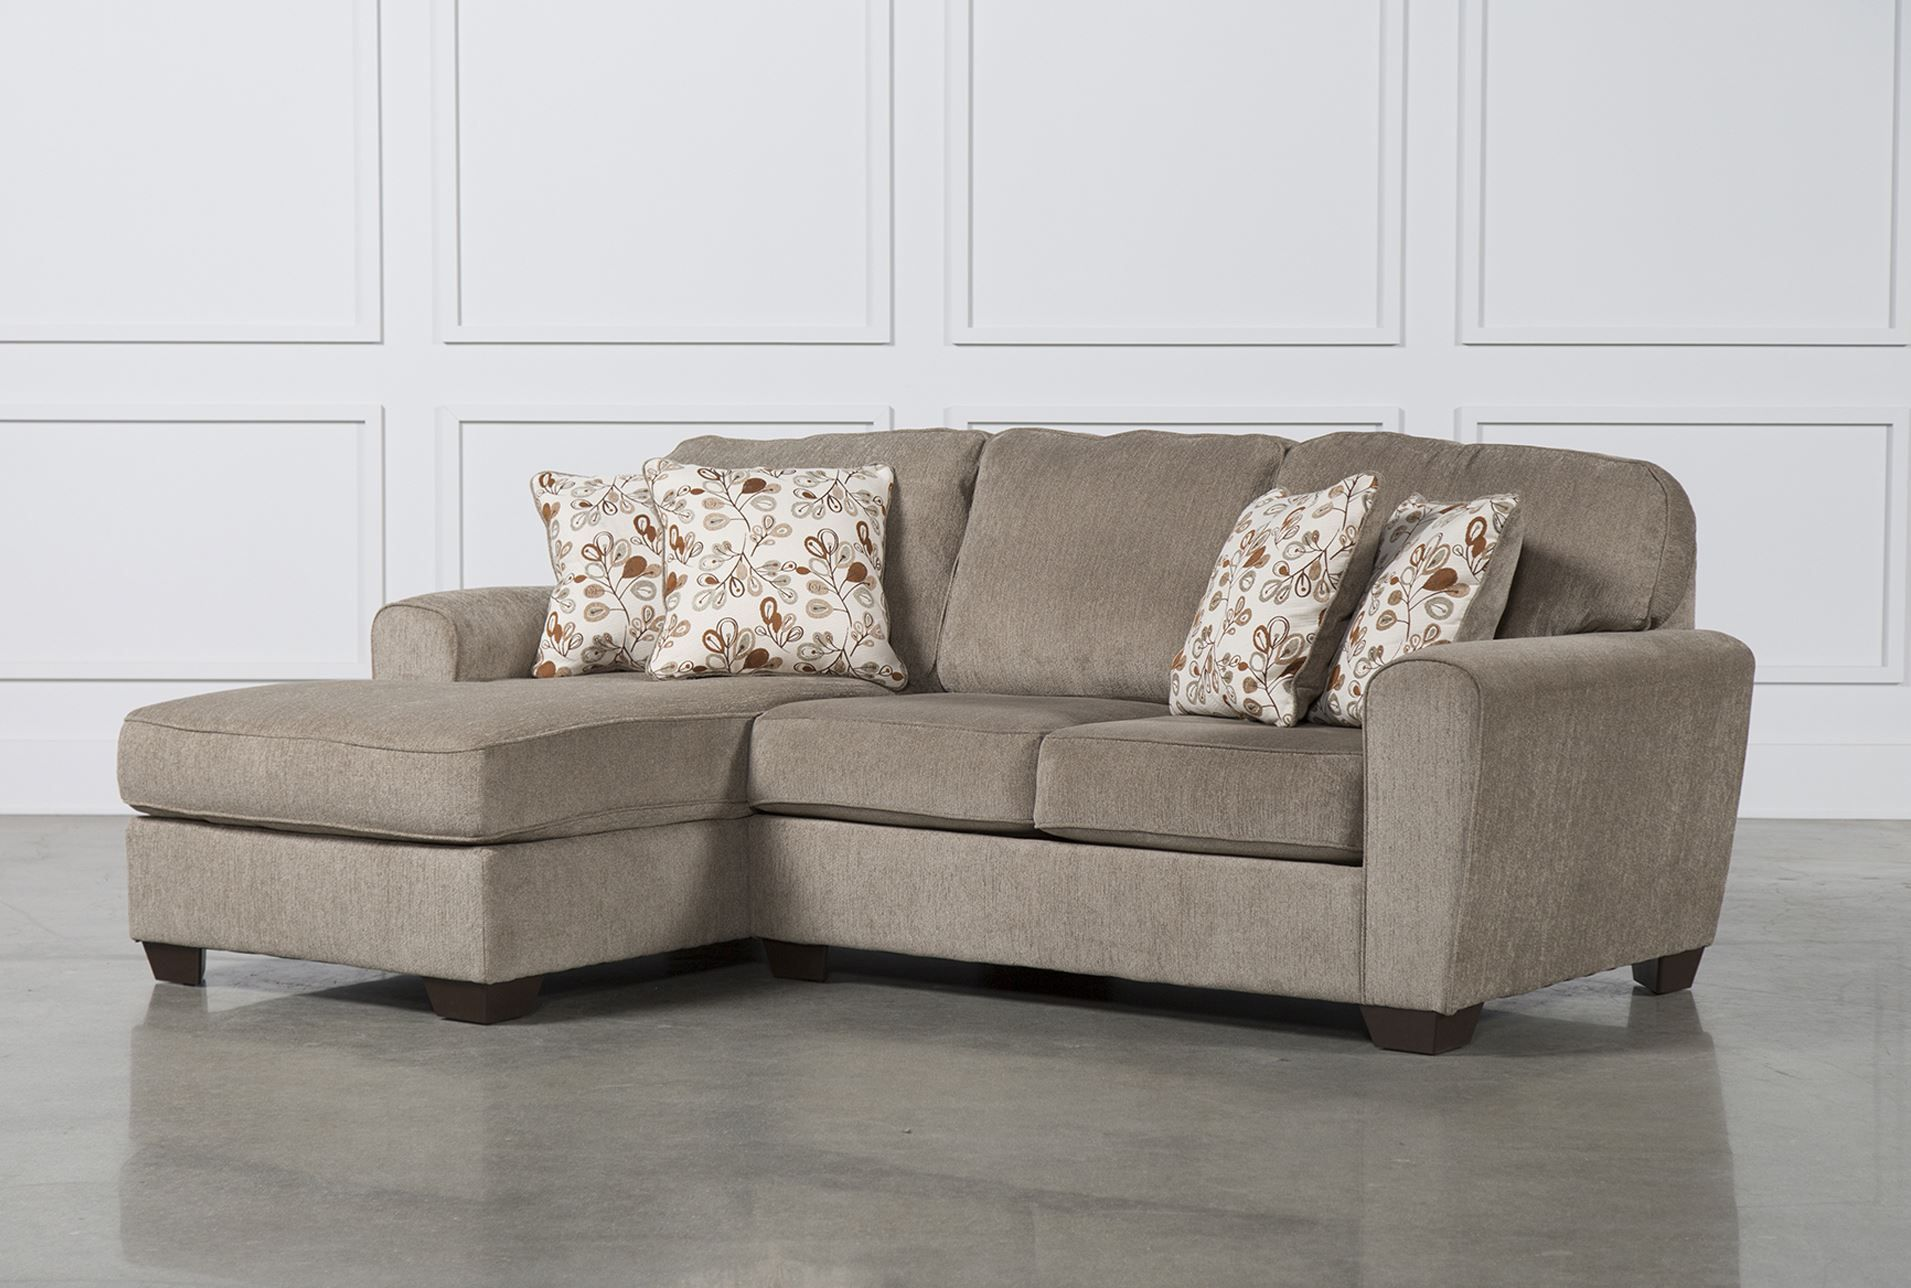 Patola Park 2 Piece Sectional W/Laf Chaise